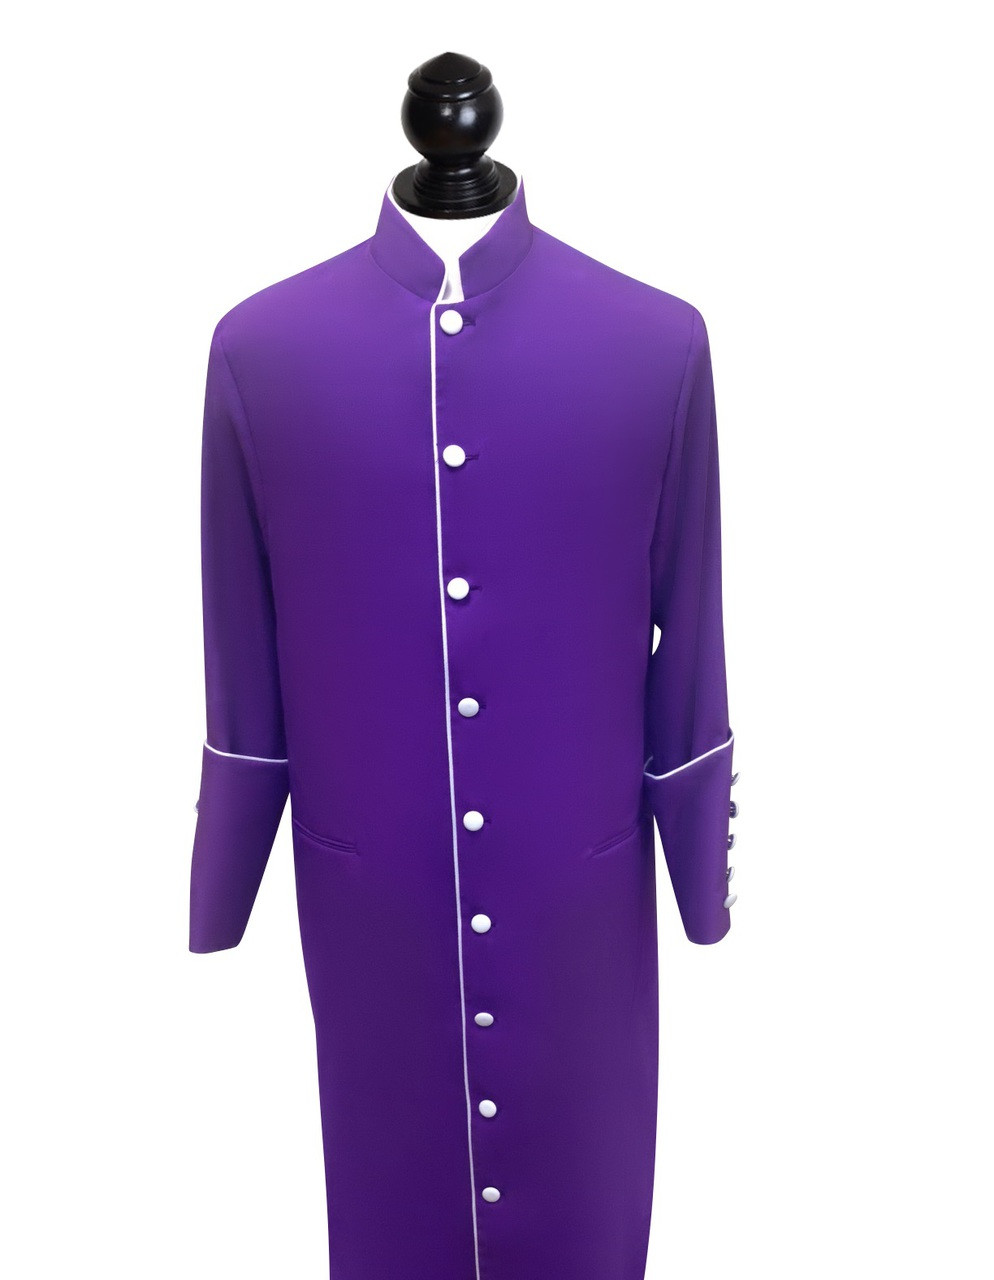 Men S Purple Clergy Robe With White Trim Buttons Accent